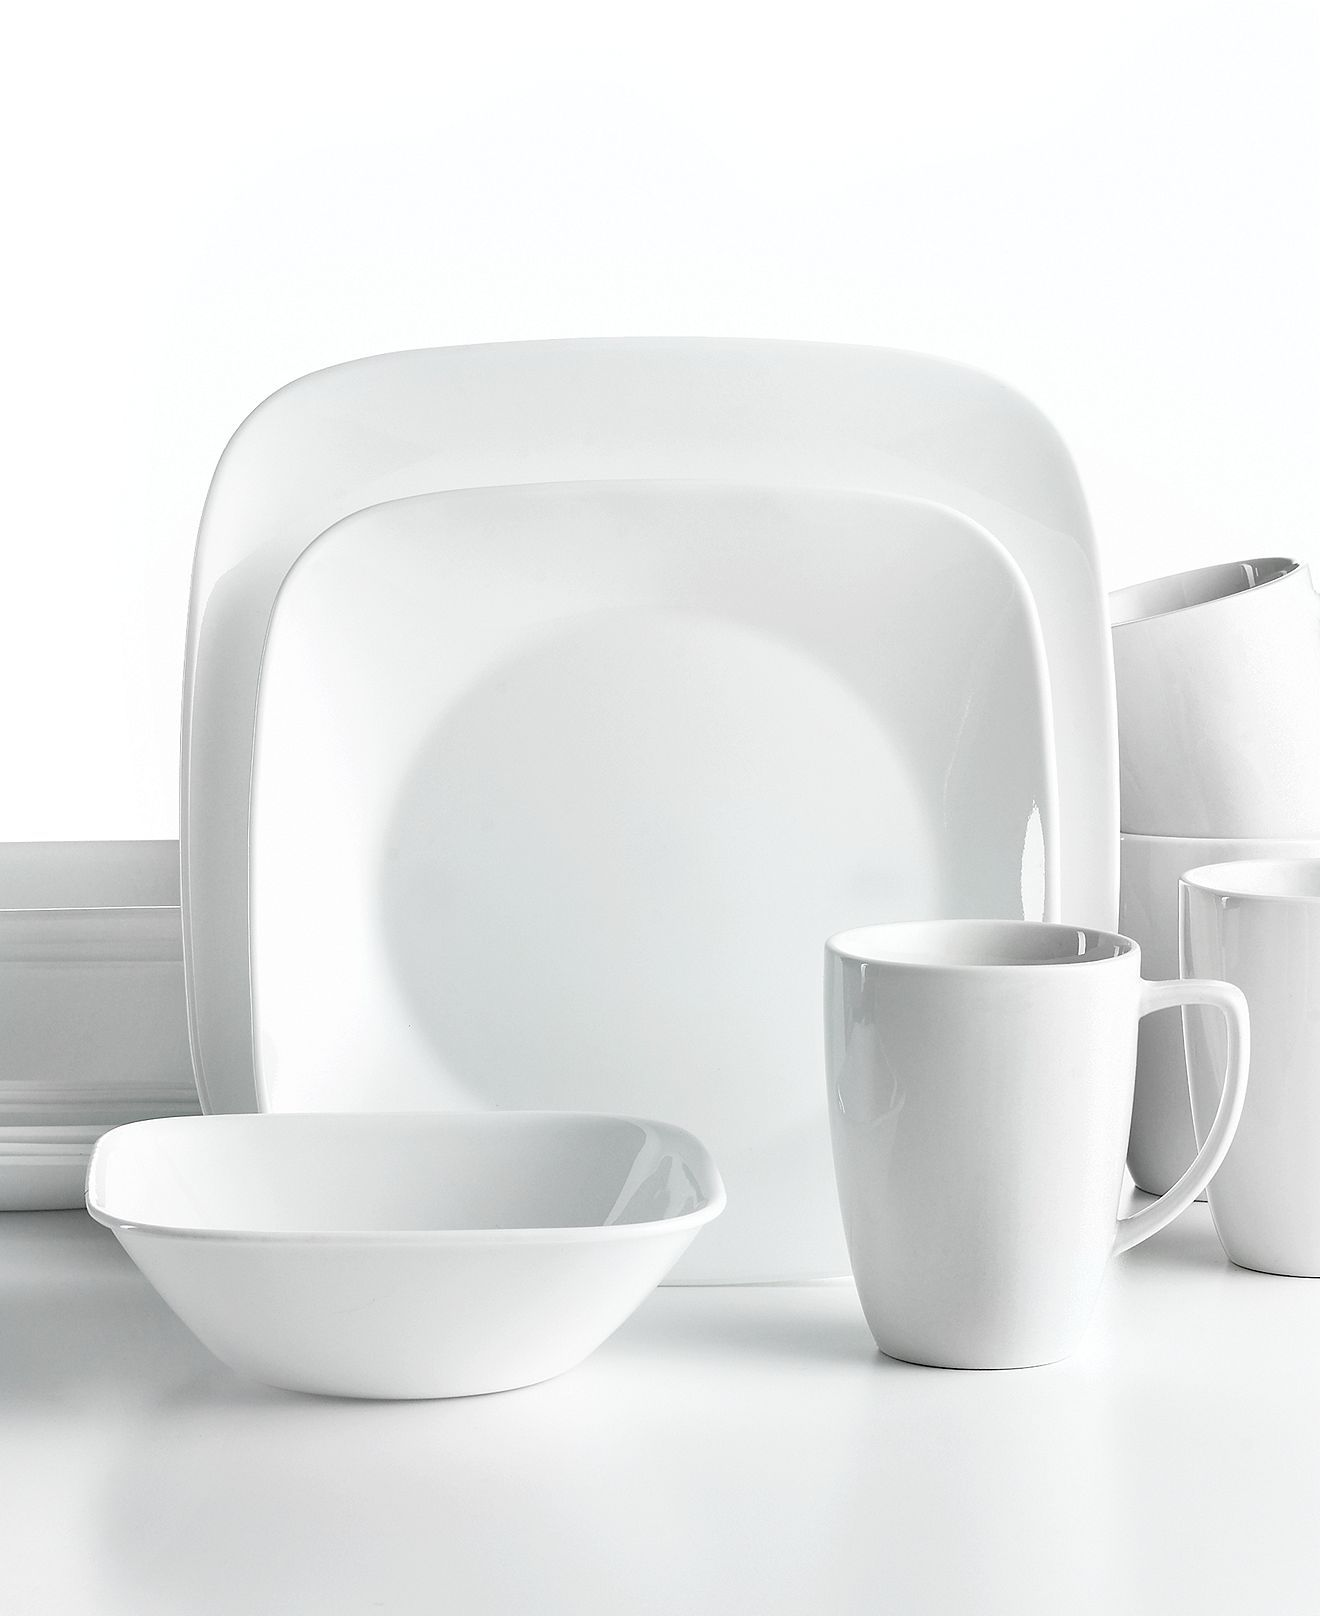 #Corelle Vivid White Square dinnerware. Ultra-sturdy plates bowls and mugs offer unparalleled versatility in shiny white dinnerware thatu0027s always in style!  sc 1 st  Pinterest & Corelle Vivid White Square dinnerware. Ultra-sturdy plates bowls ...